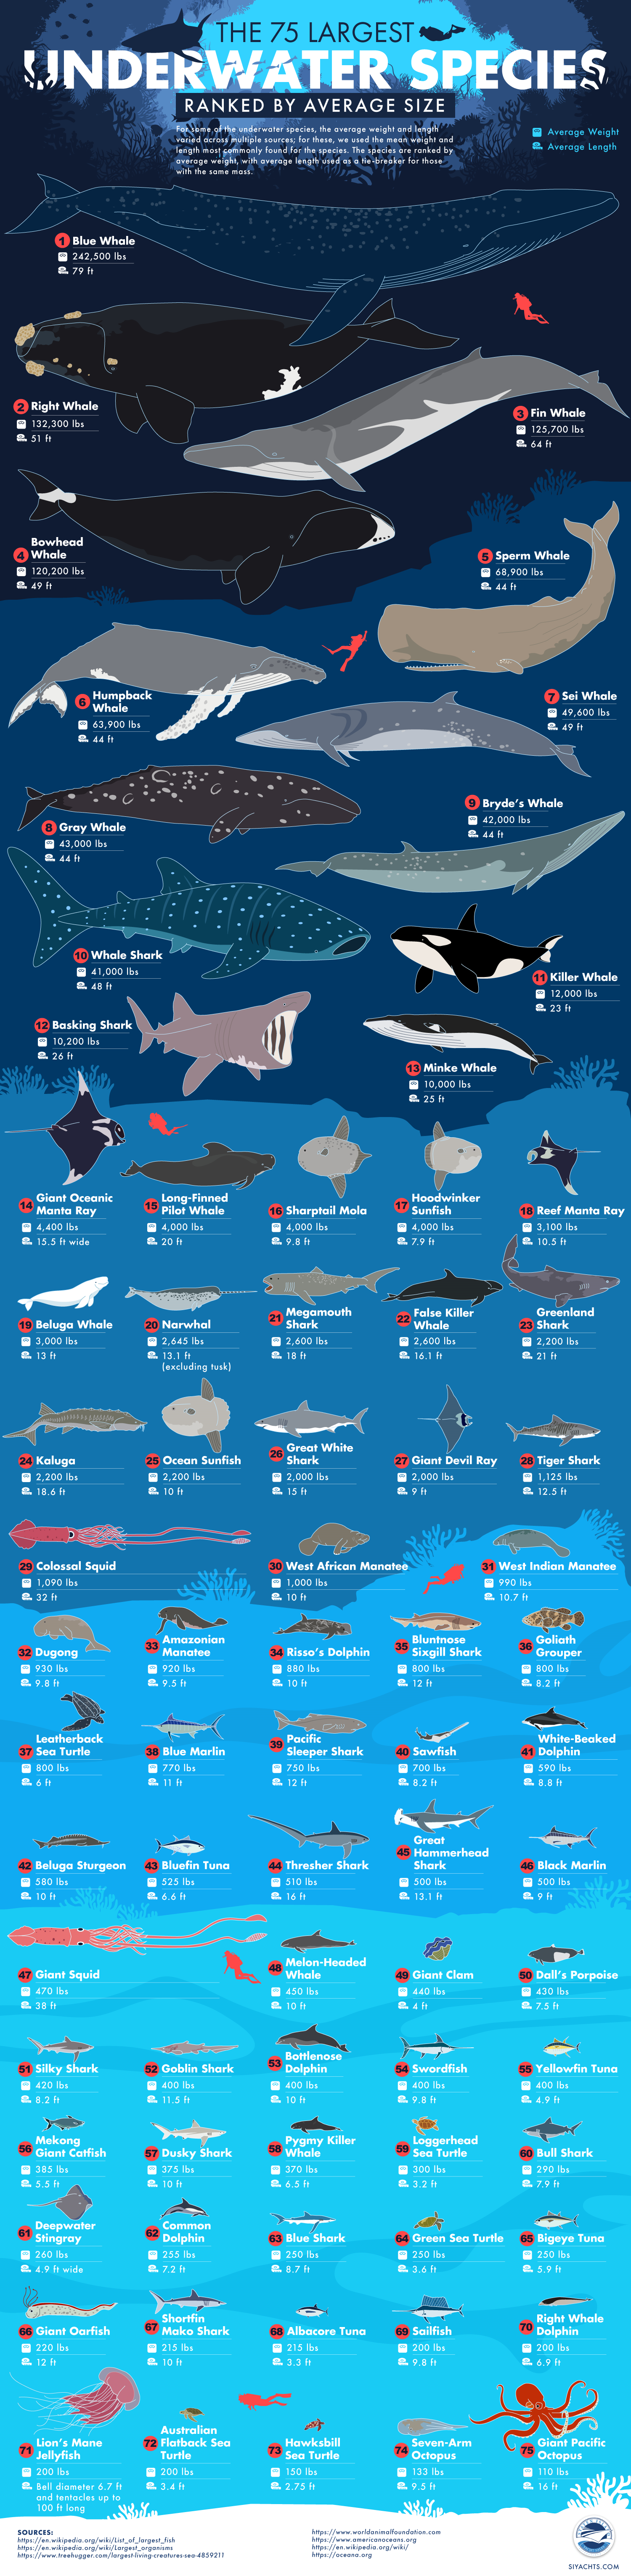 The 75 Largest Underwater Species, Ranked by Average Size Infographic